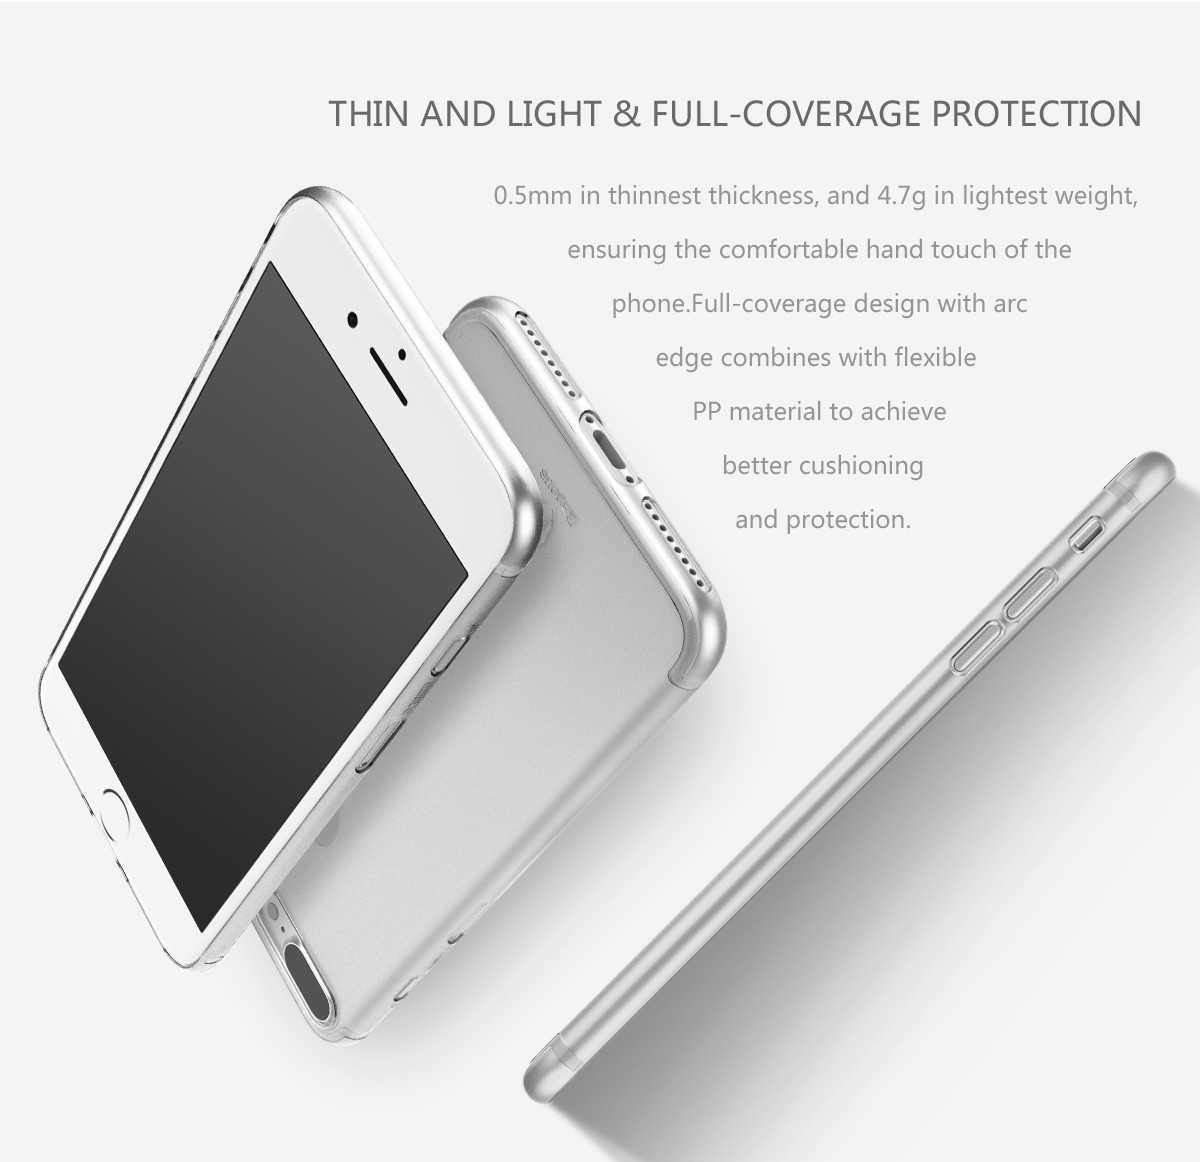 Baseus Ultathin Slim Transparent PP Case For iPhone 7/iPhone 8